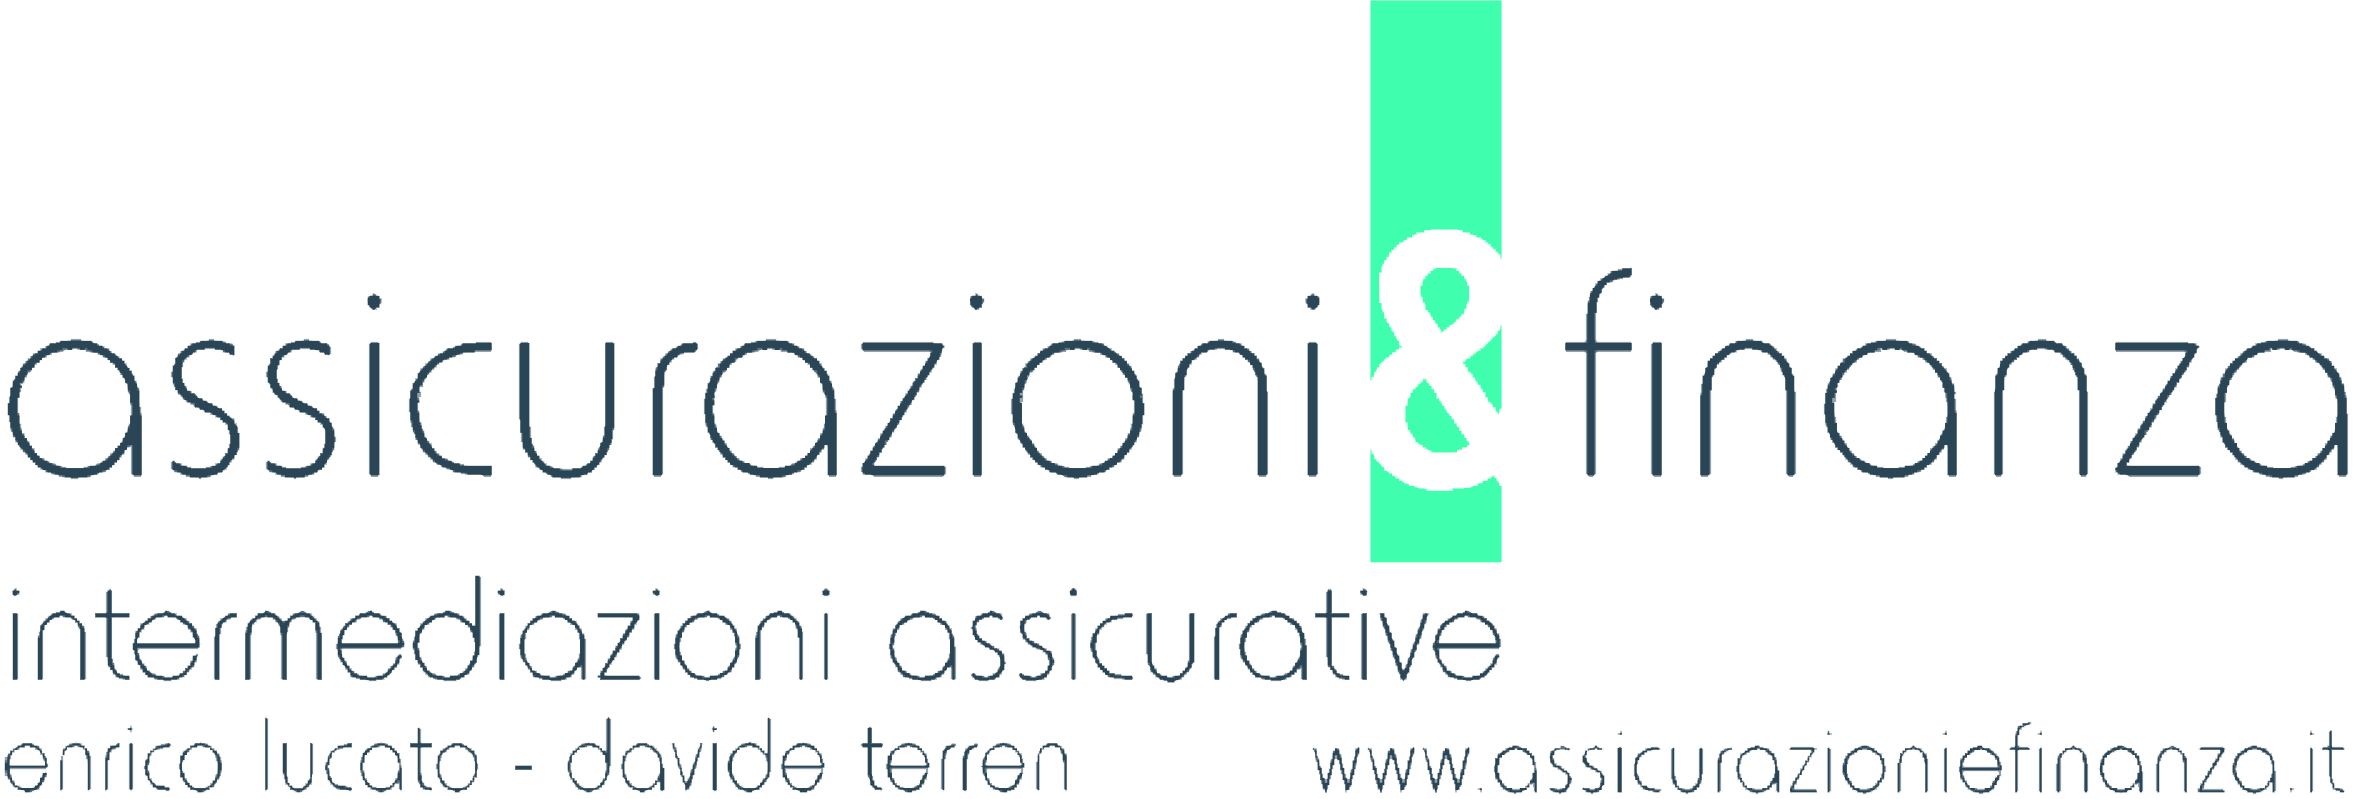 https://www.asdstrarivieradelbrenta.it/wp-content/uploads/2019/08/ASSICURAZIONIEFINANZA.png